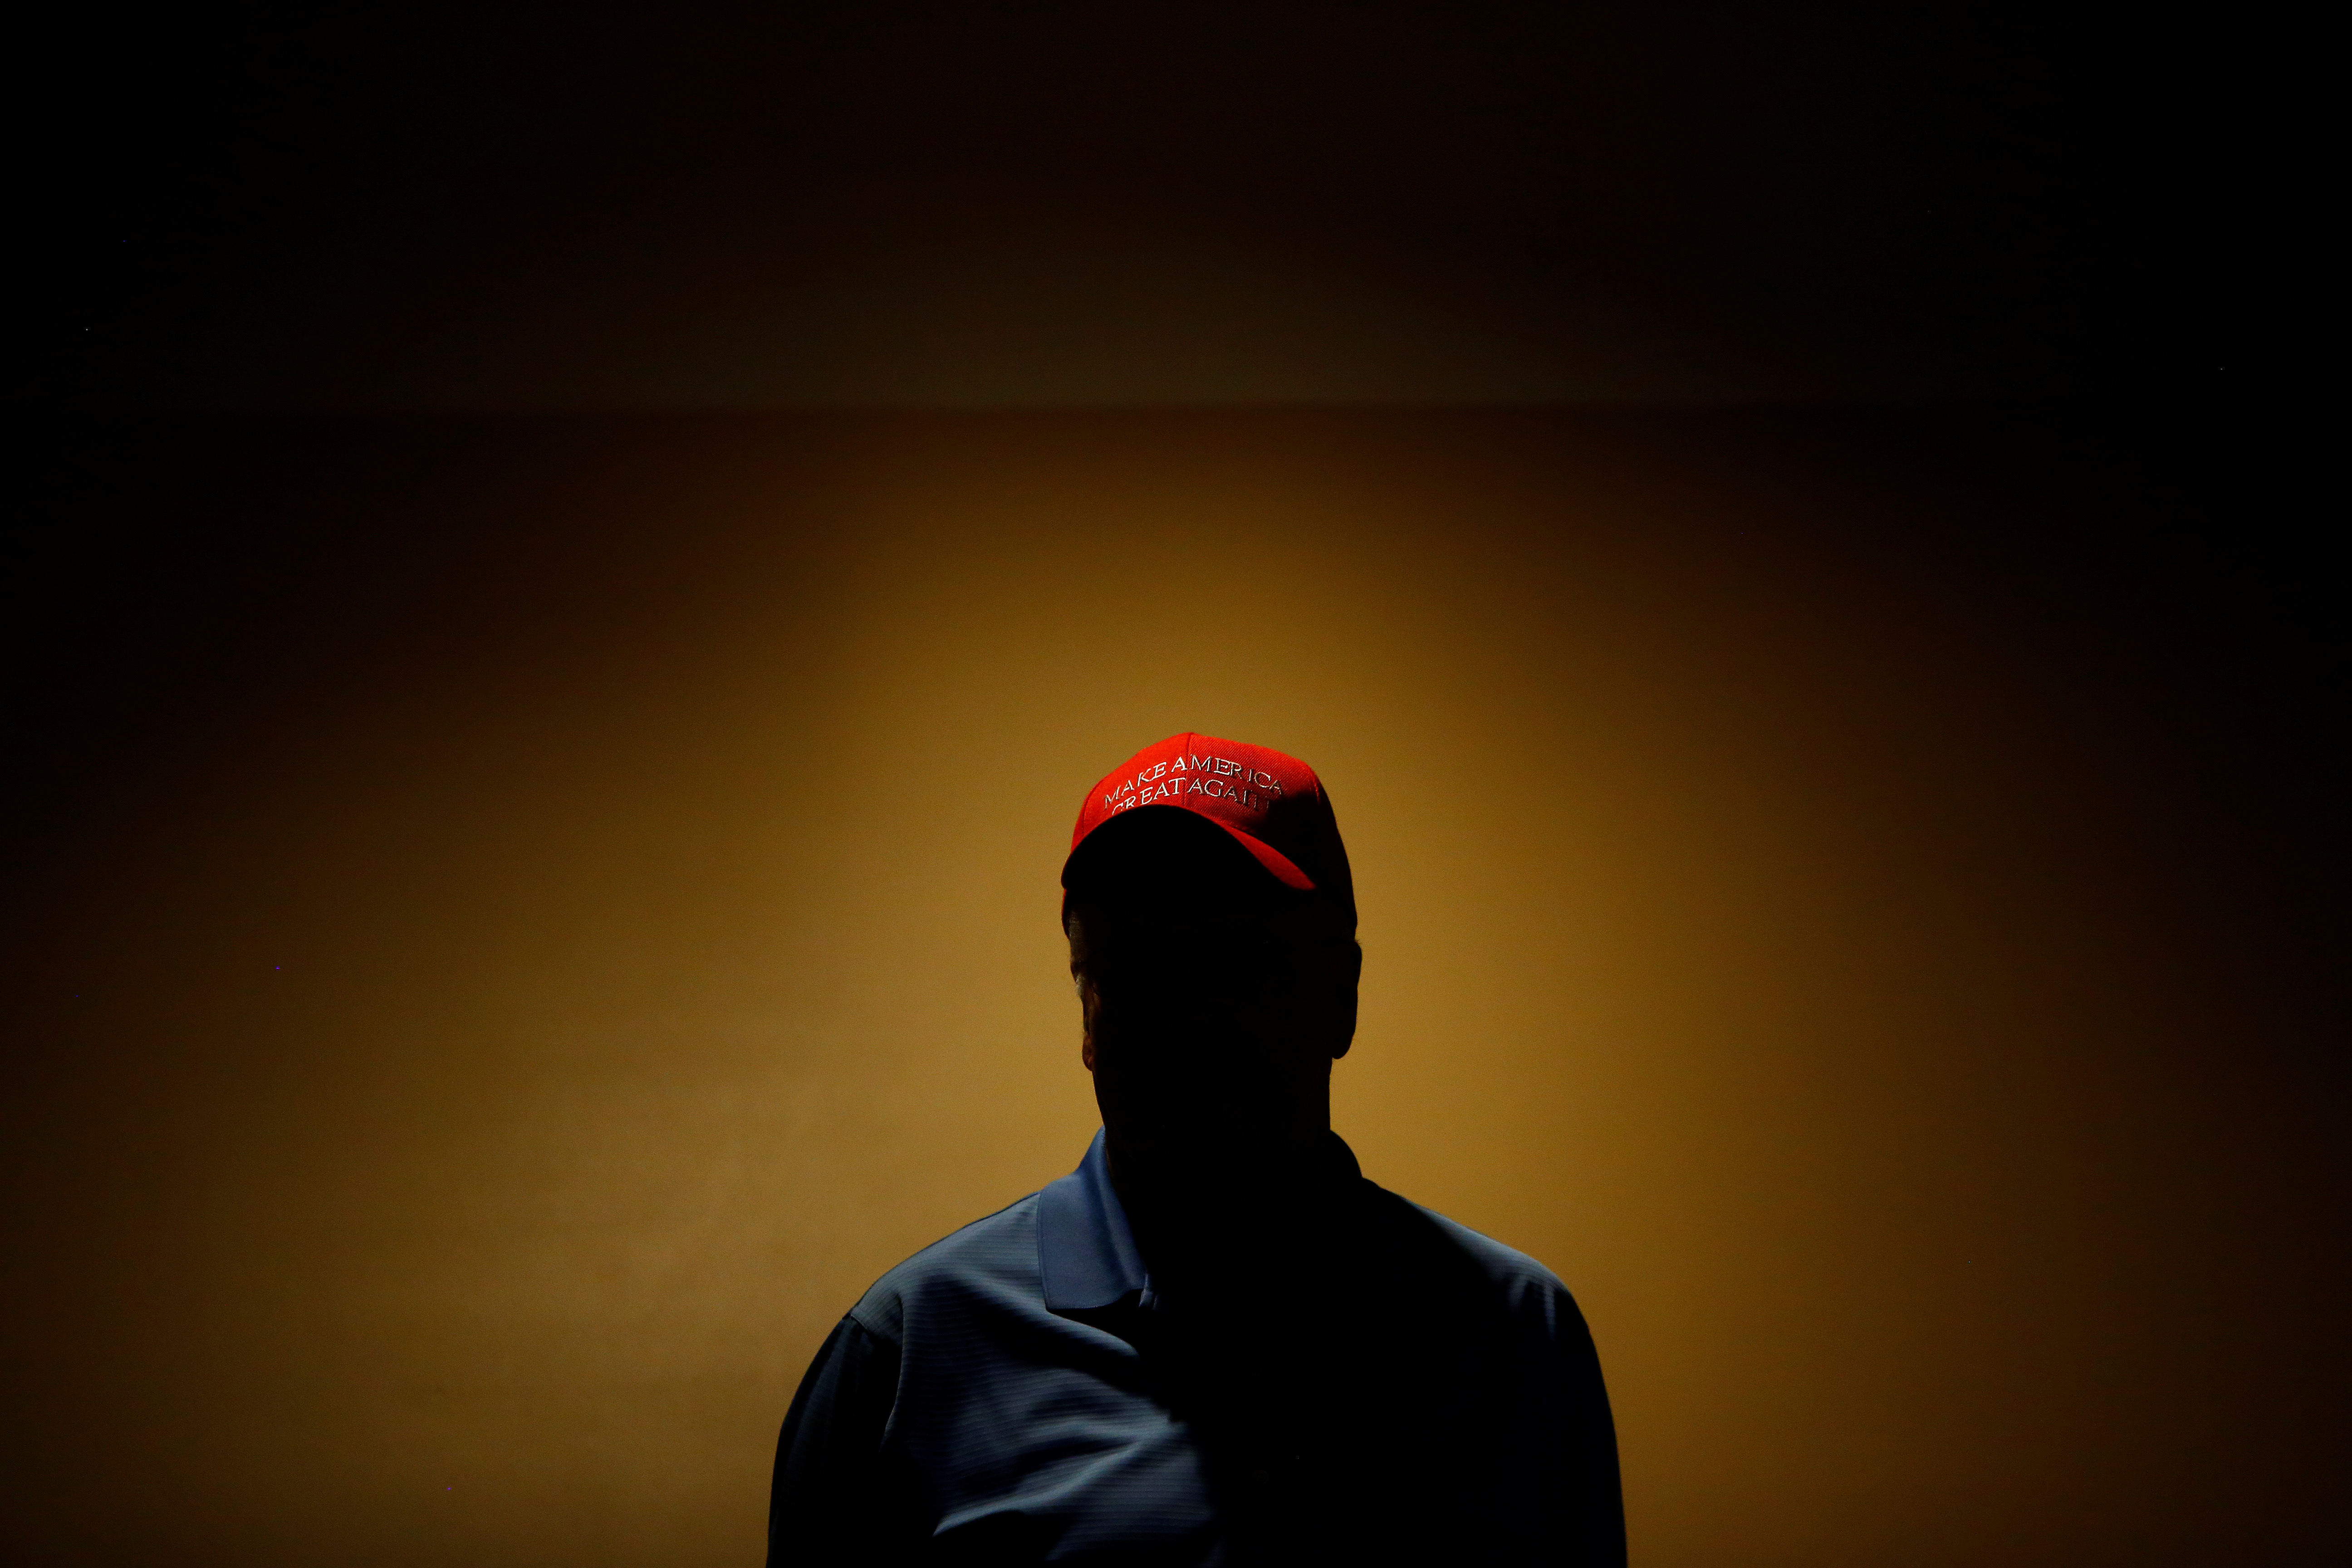 A supporter is seen before Republican U.S. Presidential nominee Donald Trump attends a campaign event at the Merrill Auditorium in Portland, Maine